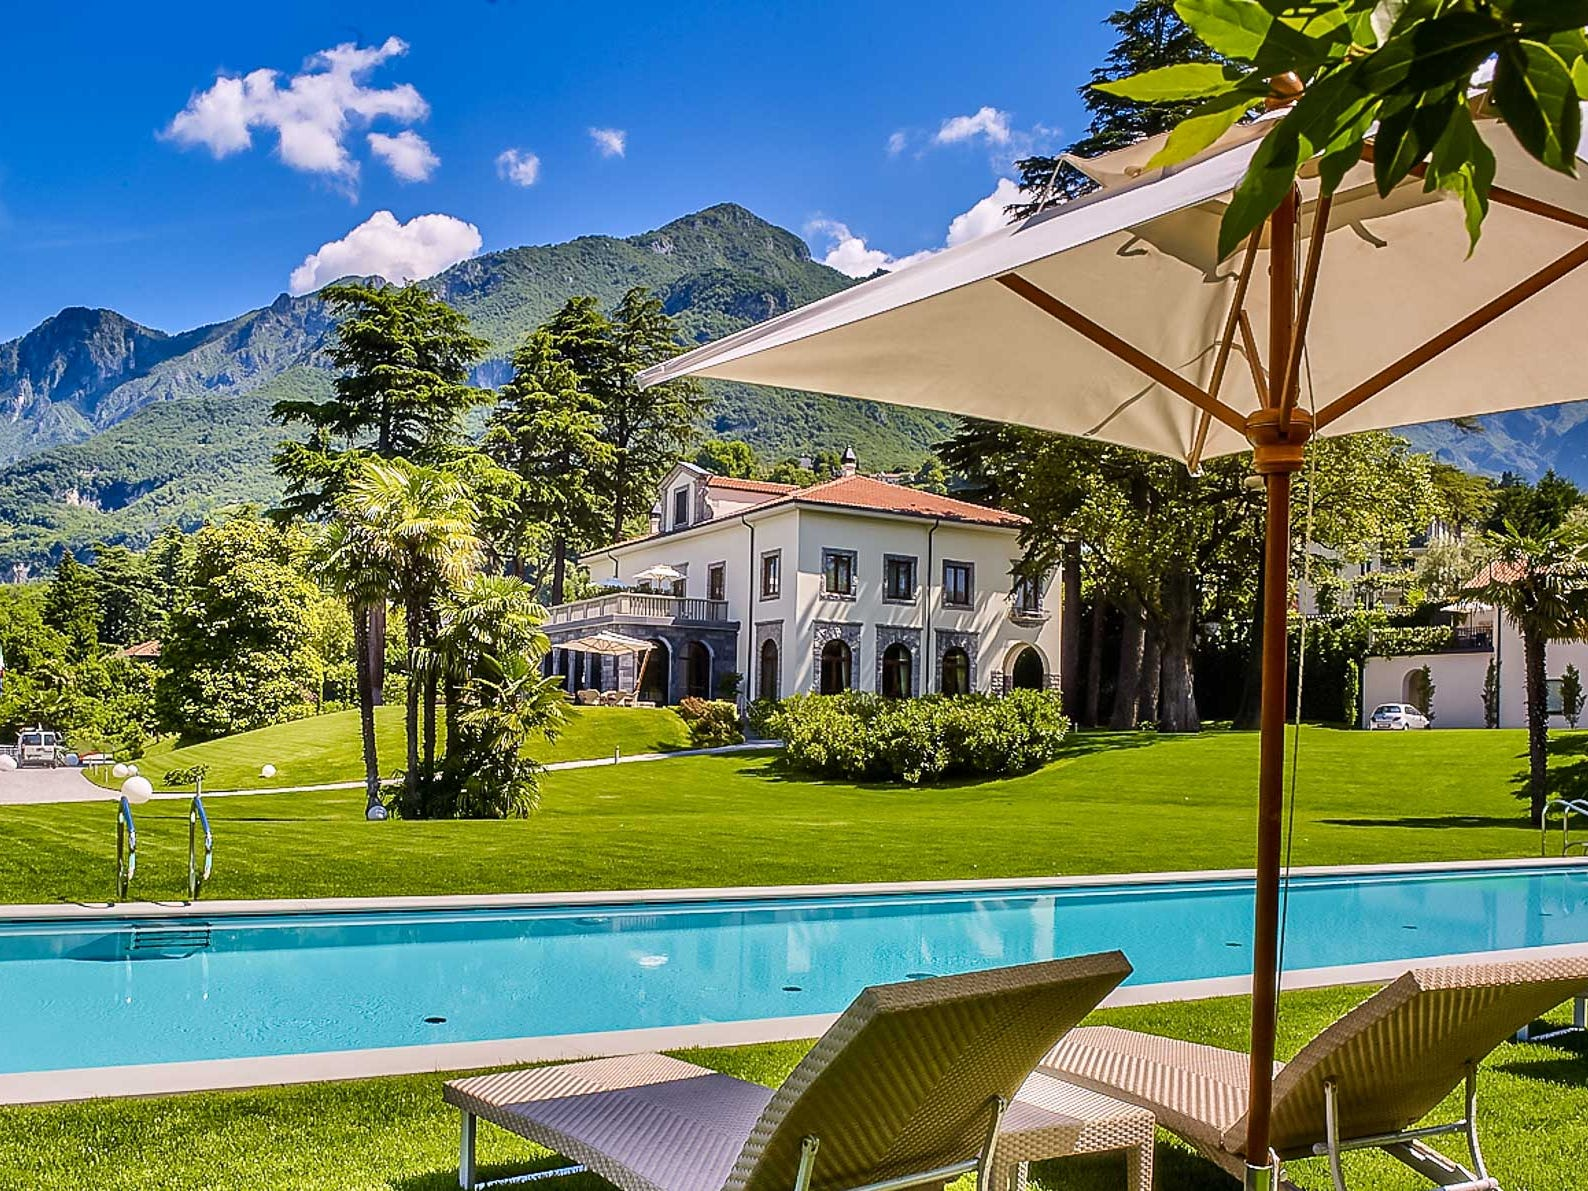 This five-bedroom property on Lake Como in Italy sleeps 10 and rents for $6,974 - $6,974 a night.